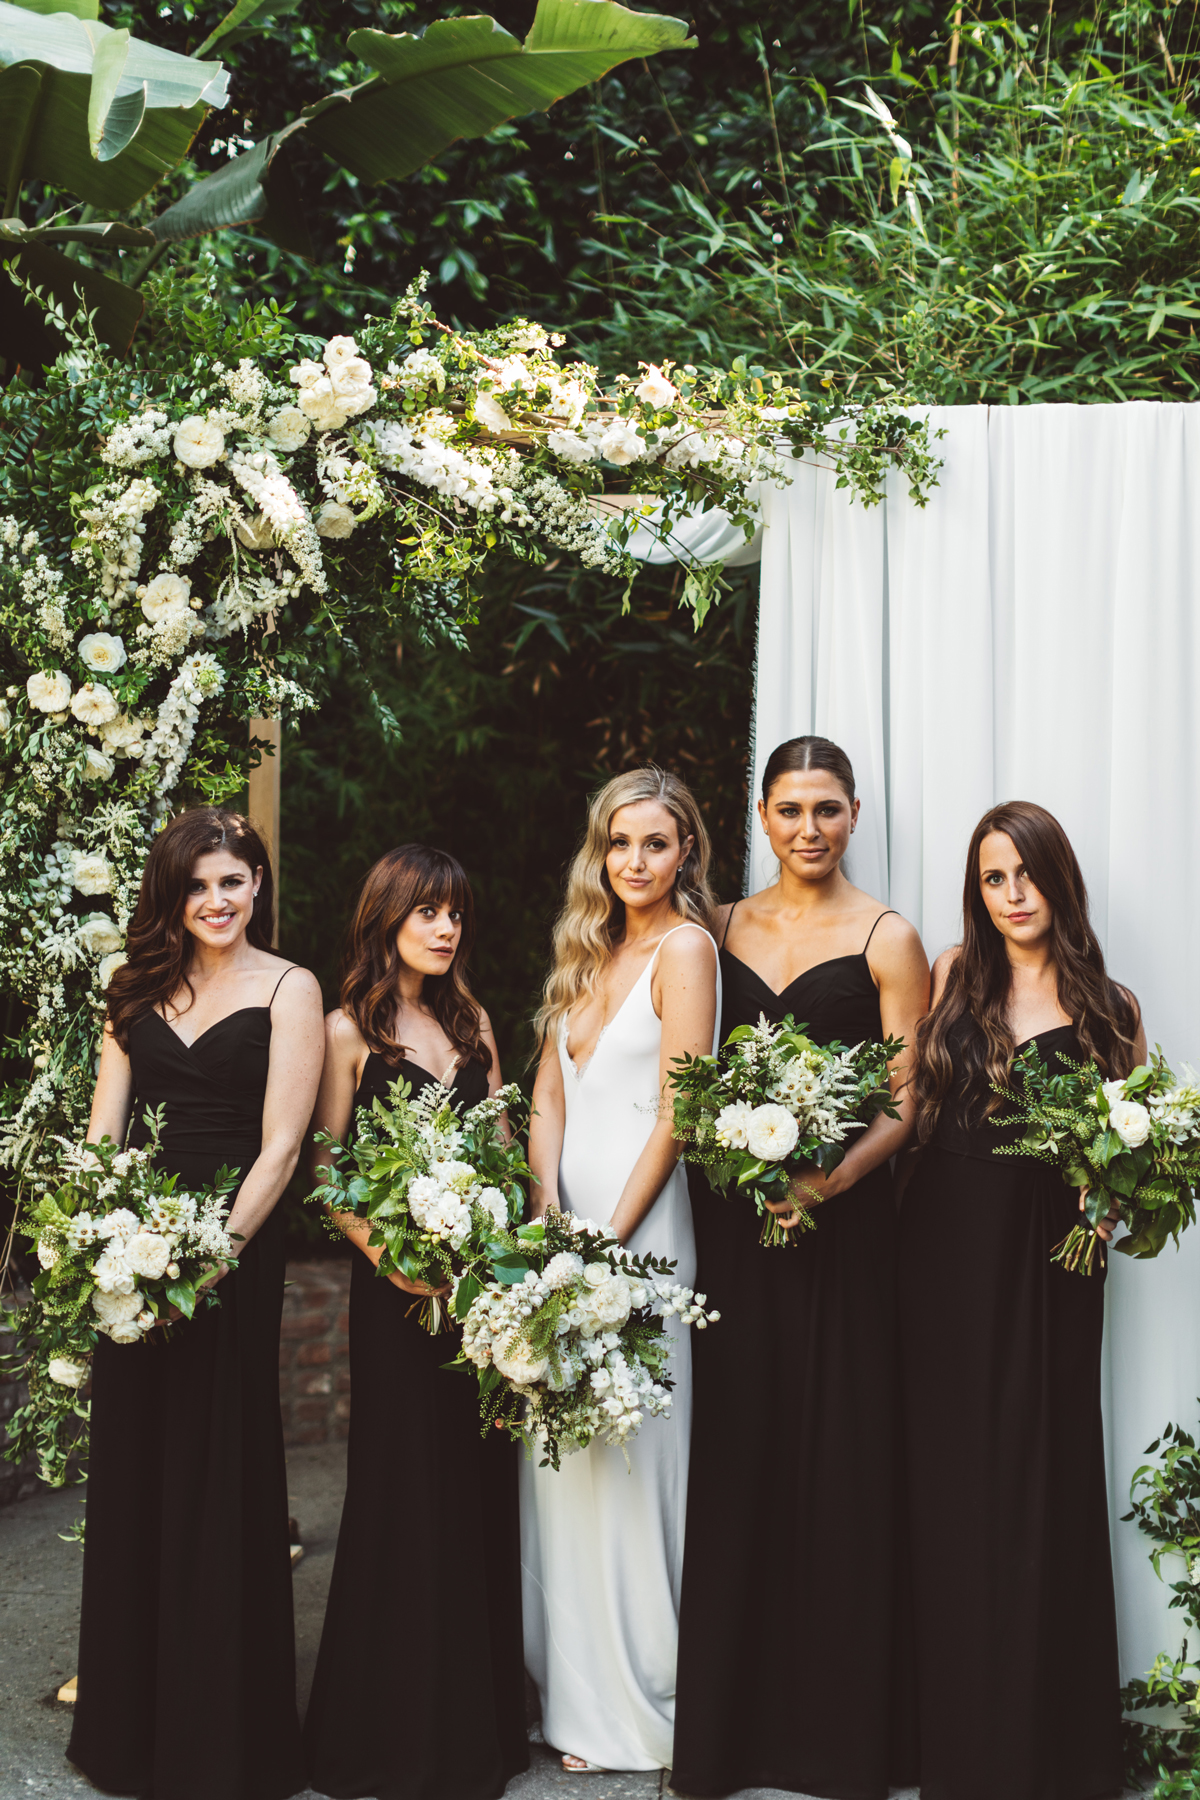 kaily matt wedding los angeles bride and bridesmaids